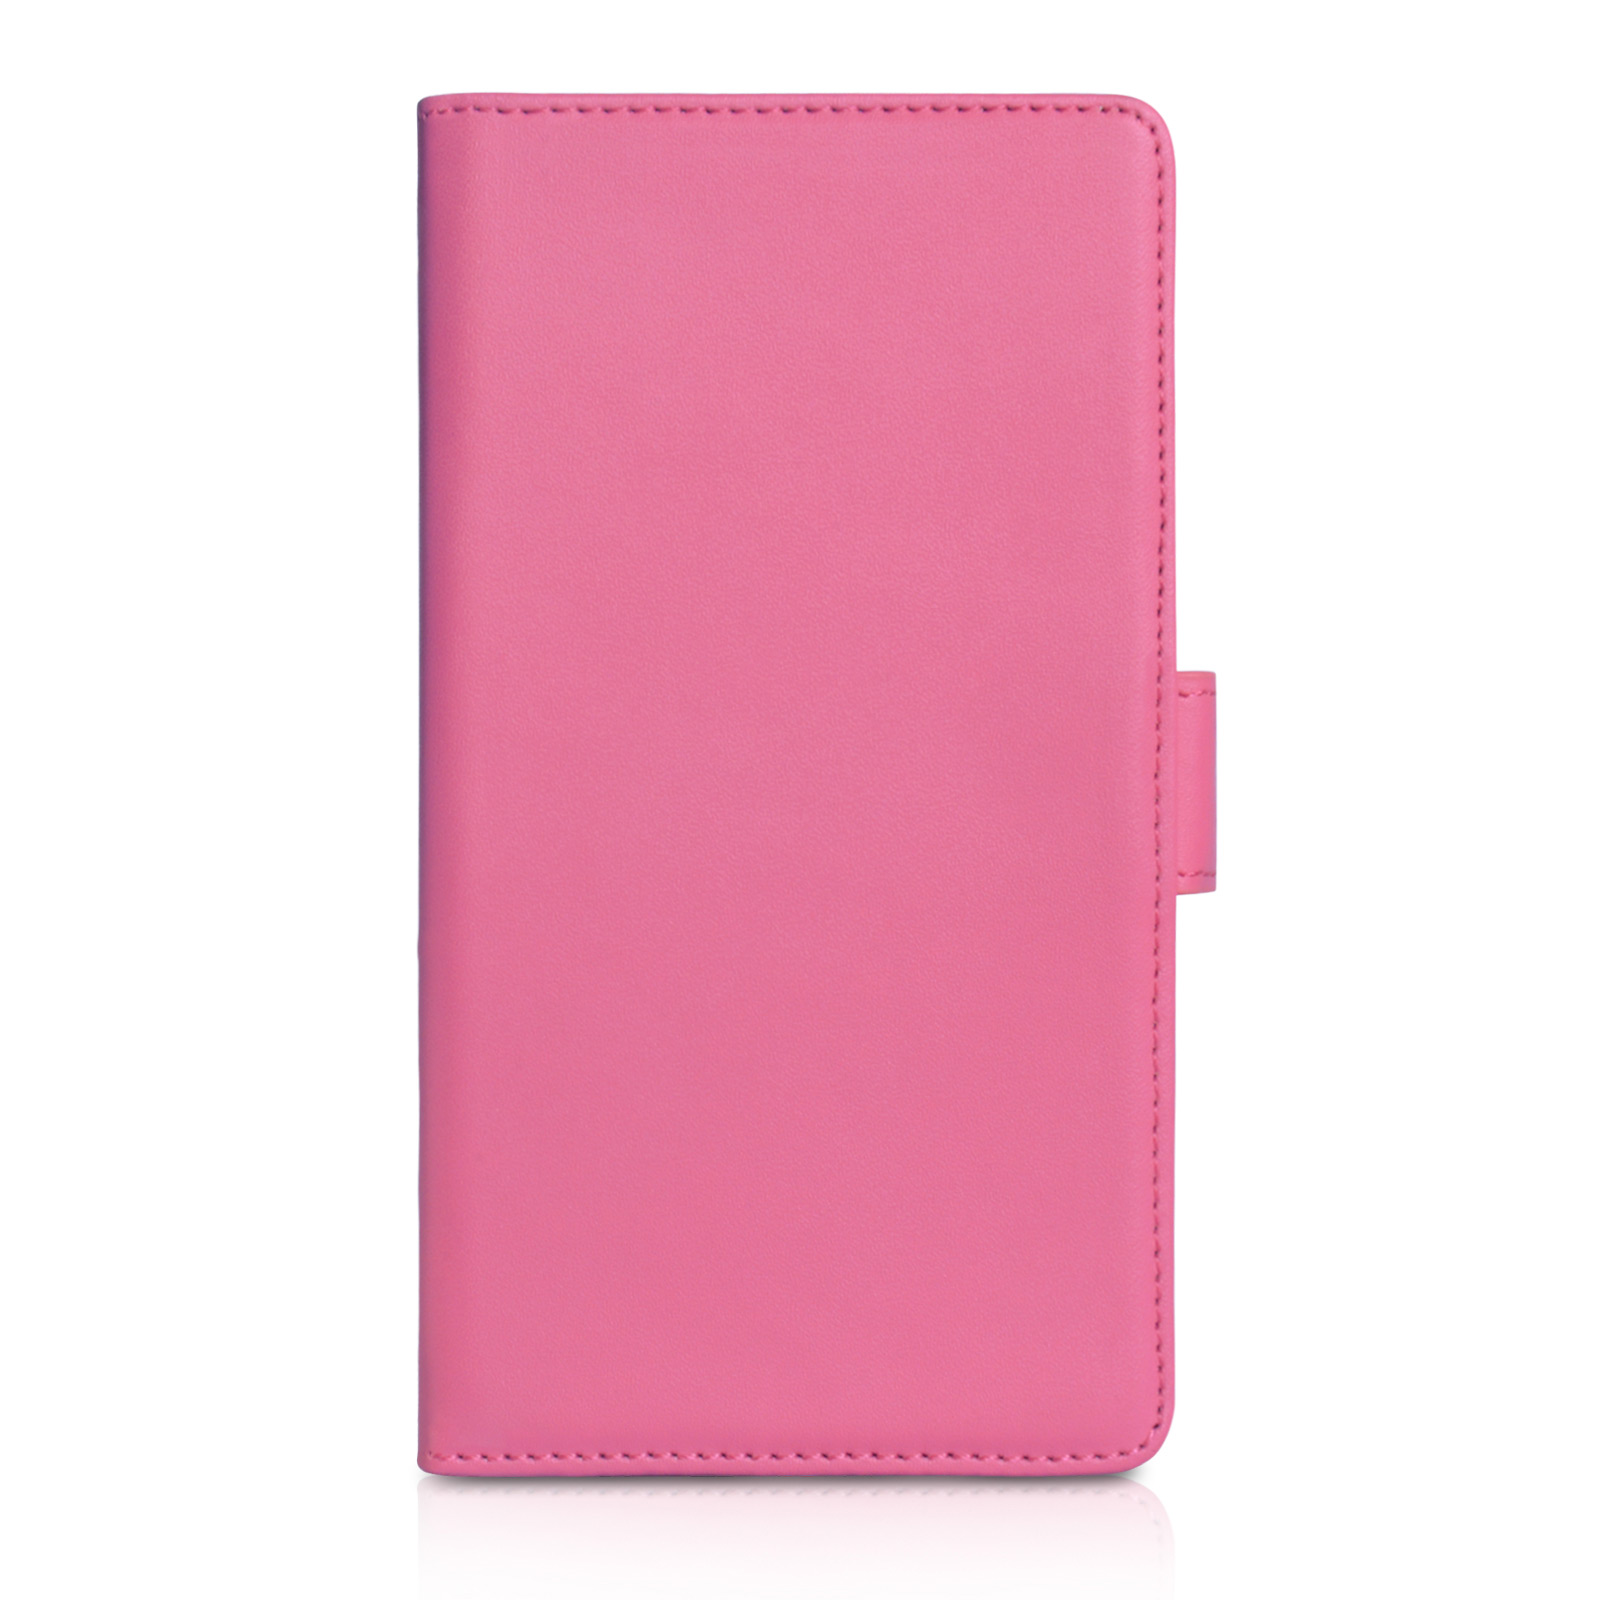 YouSave Sony Xperia Z2 Leather-Effect Wallet Case - Hot Pink